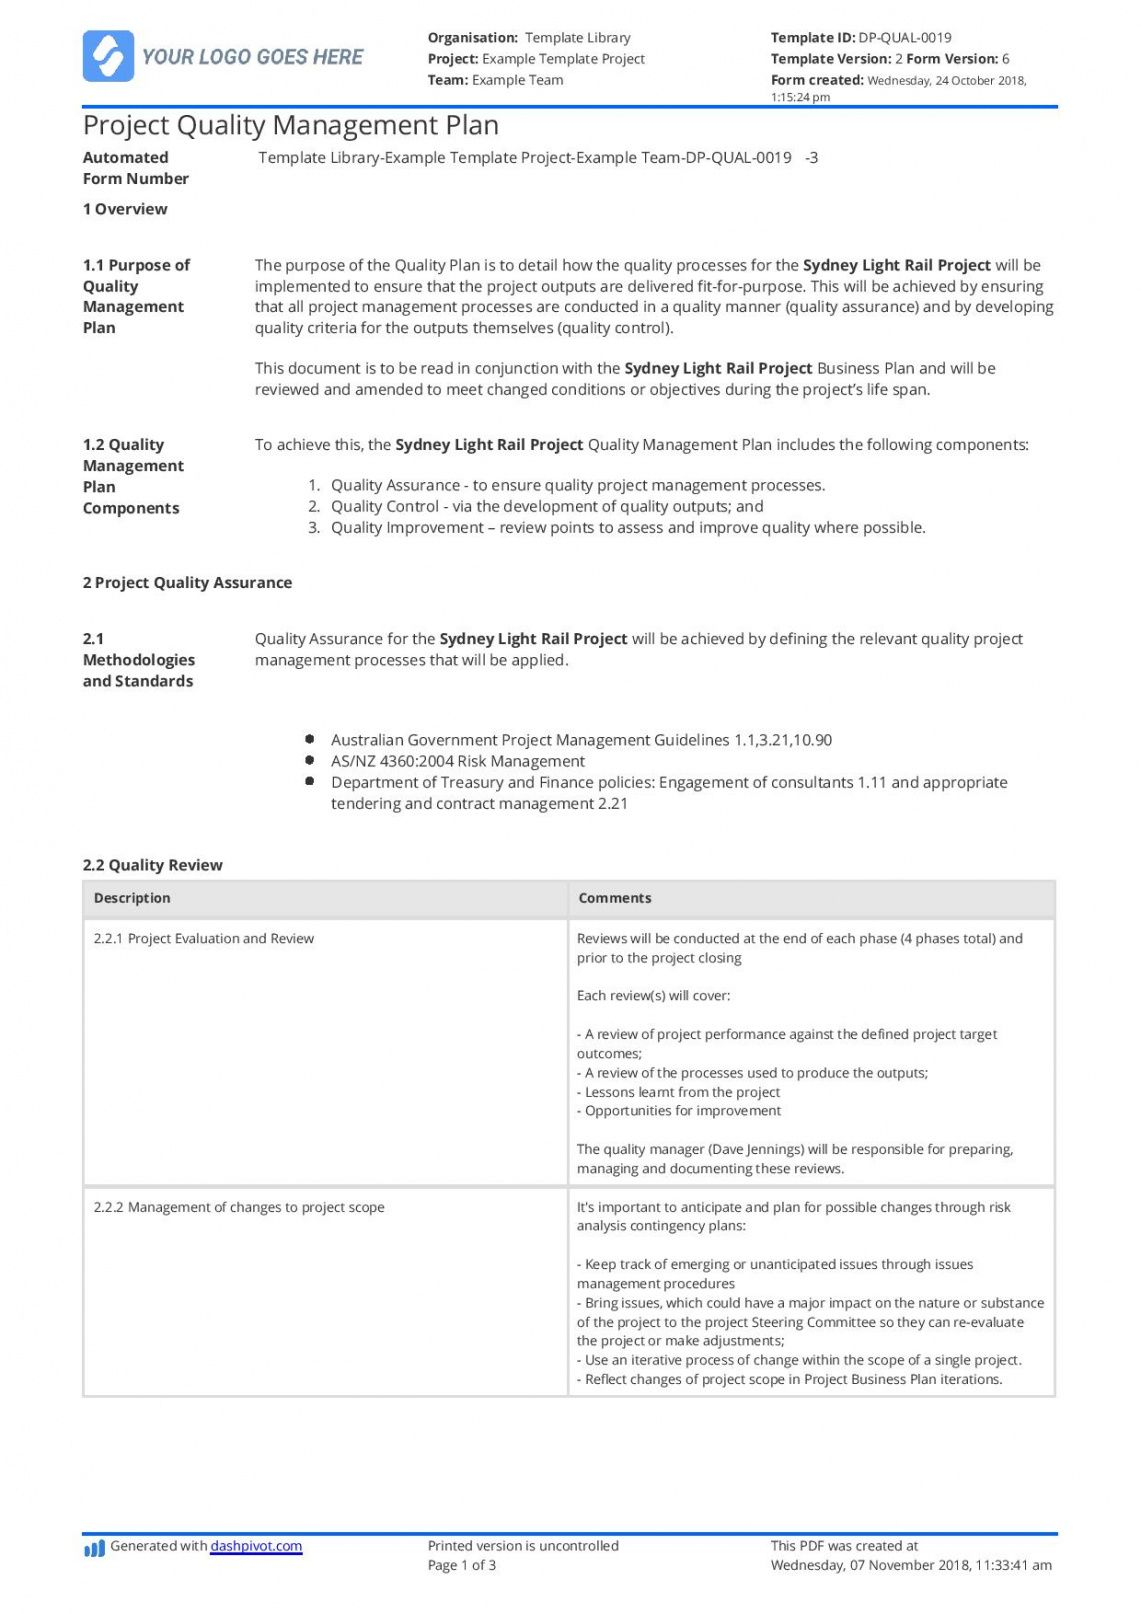 printable construction quality management plan free and customisable project management quality management plan template sample